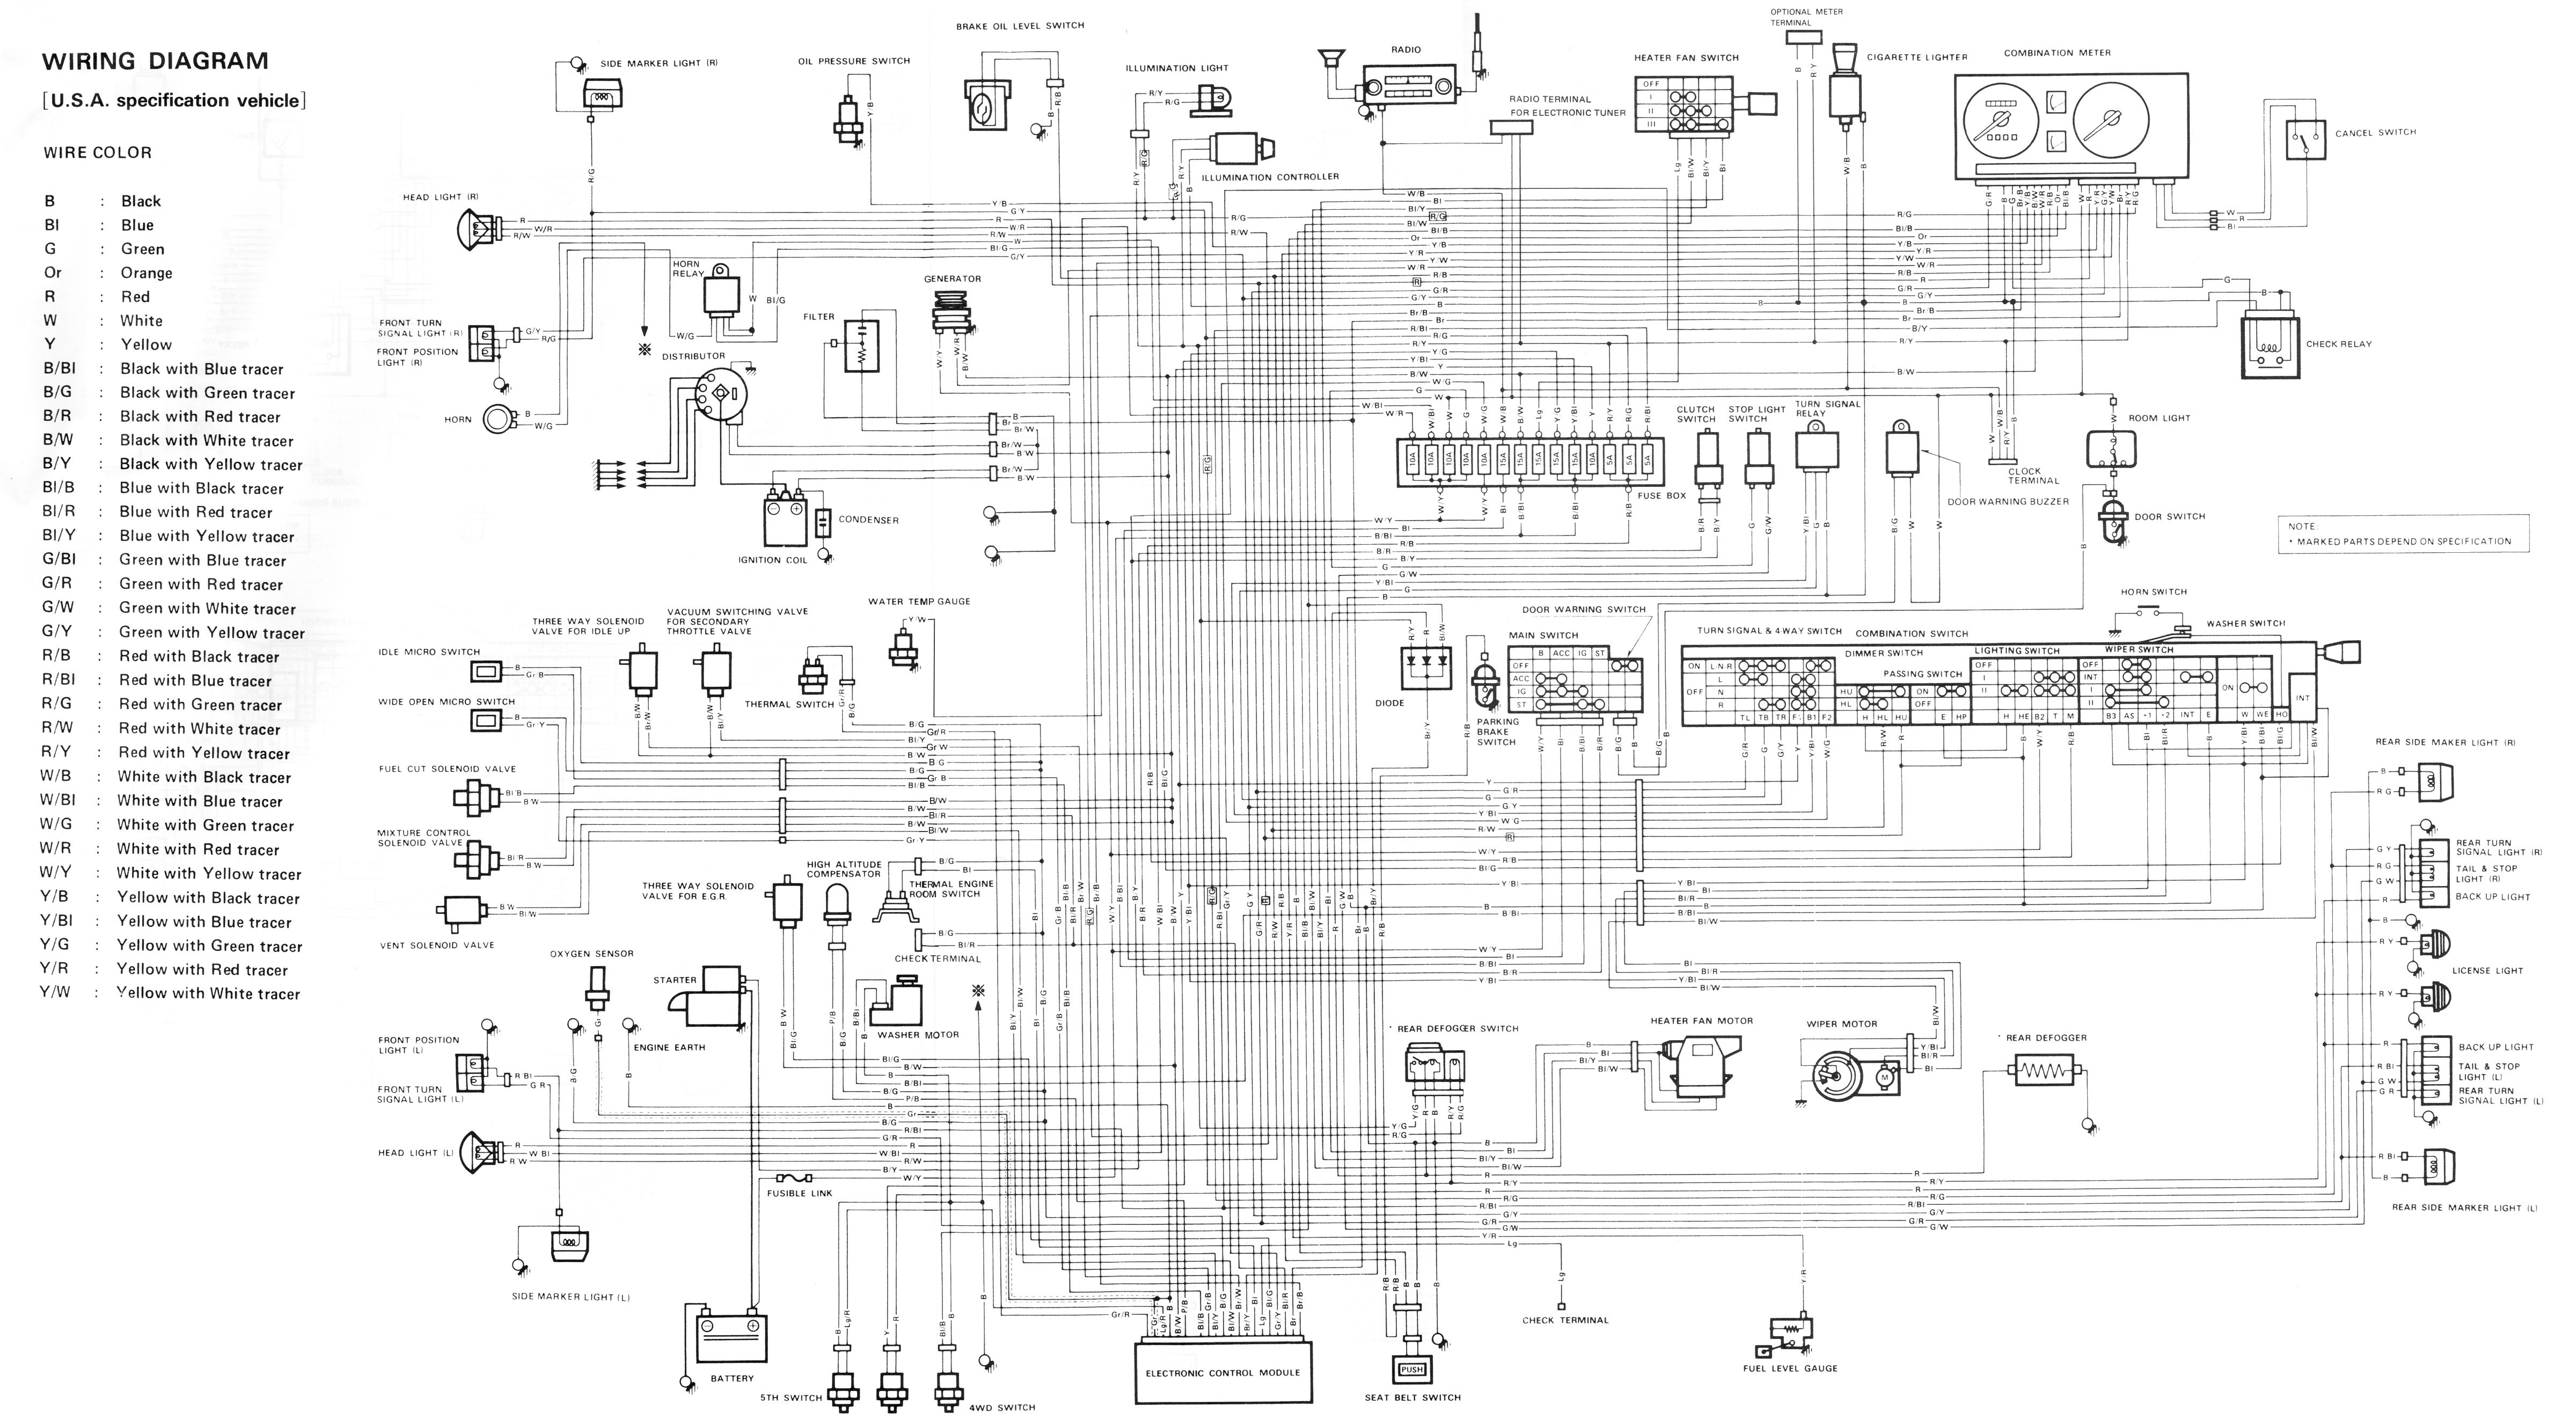 bmw electrical diagrams with 1960 Rolls Royce Wiring Diagram on PlymouthIndex besides Viewtopic besides Harley Davidson Sportster Fuse Box as well Wiring Diagram Type 928 S Model 85 Page 7 further Conventional Versus Electron Flow.